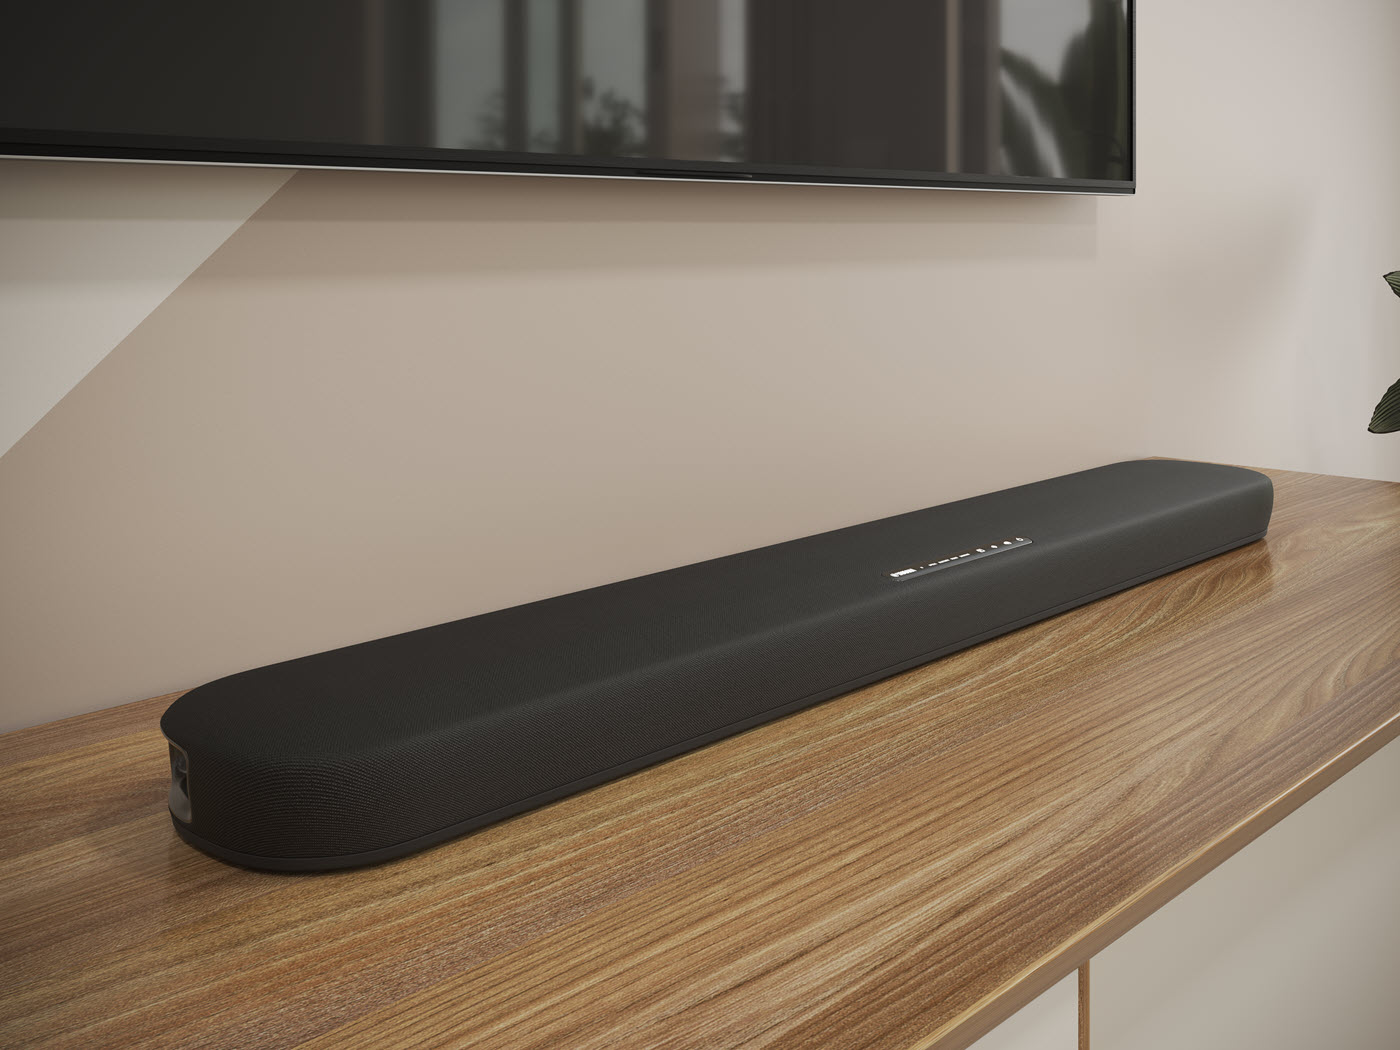 Long thin speaker laying on a counter underneath a flat screen TV which hangs on the wall above it.